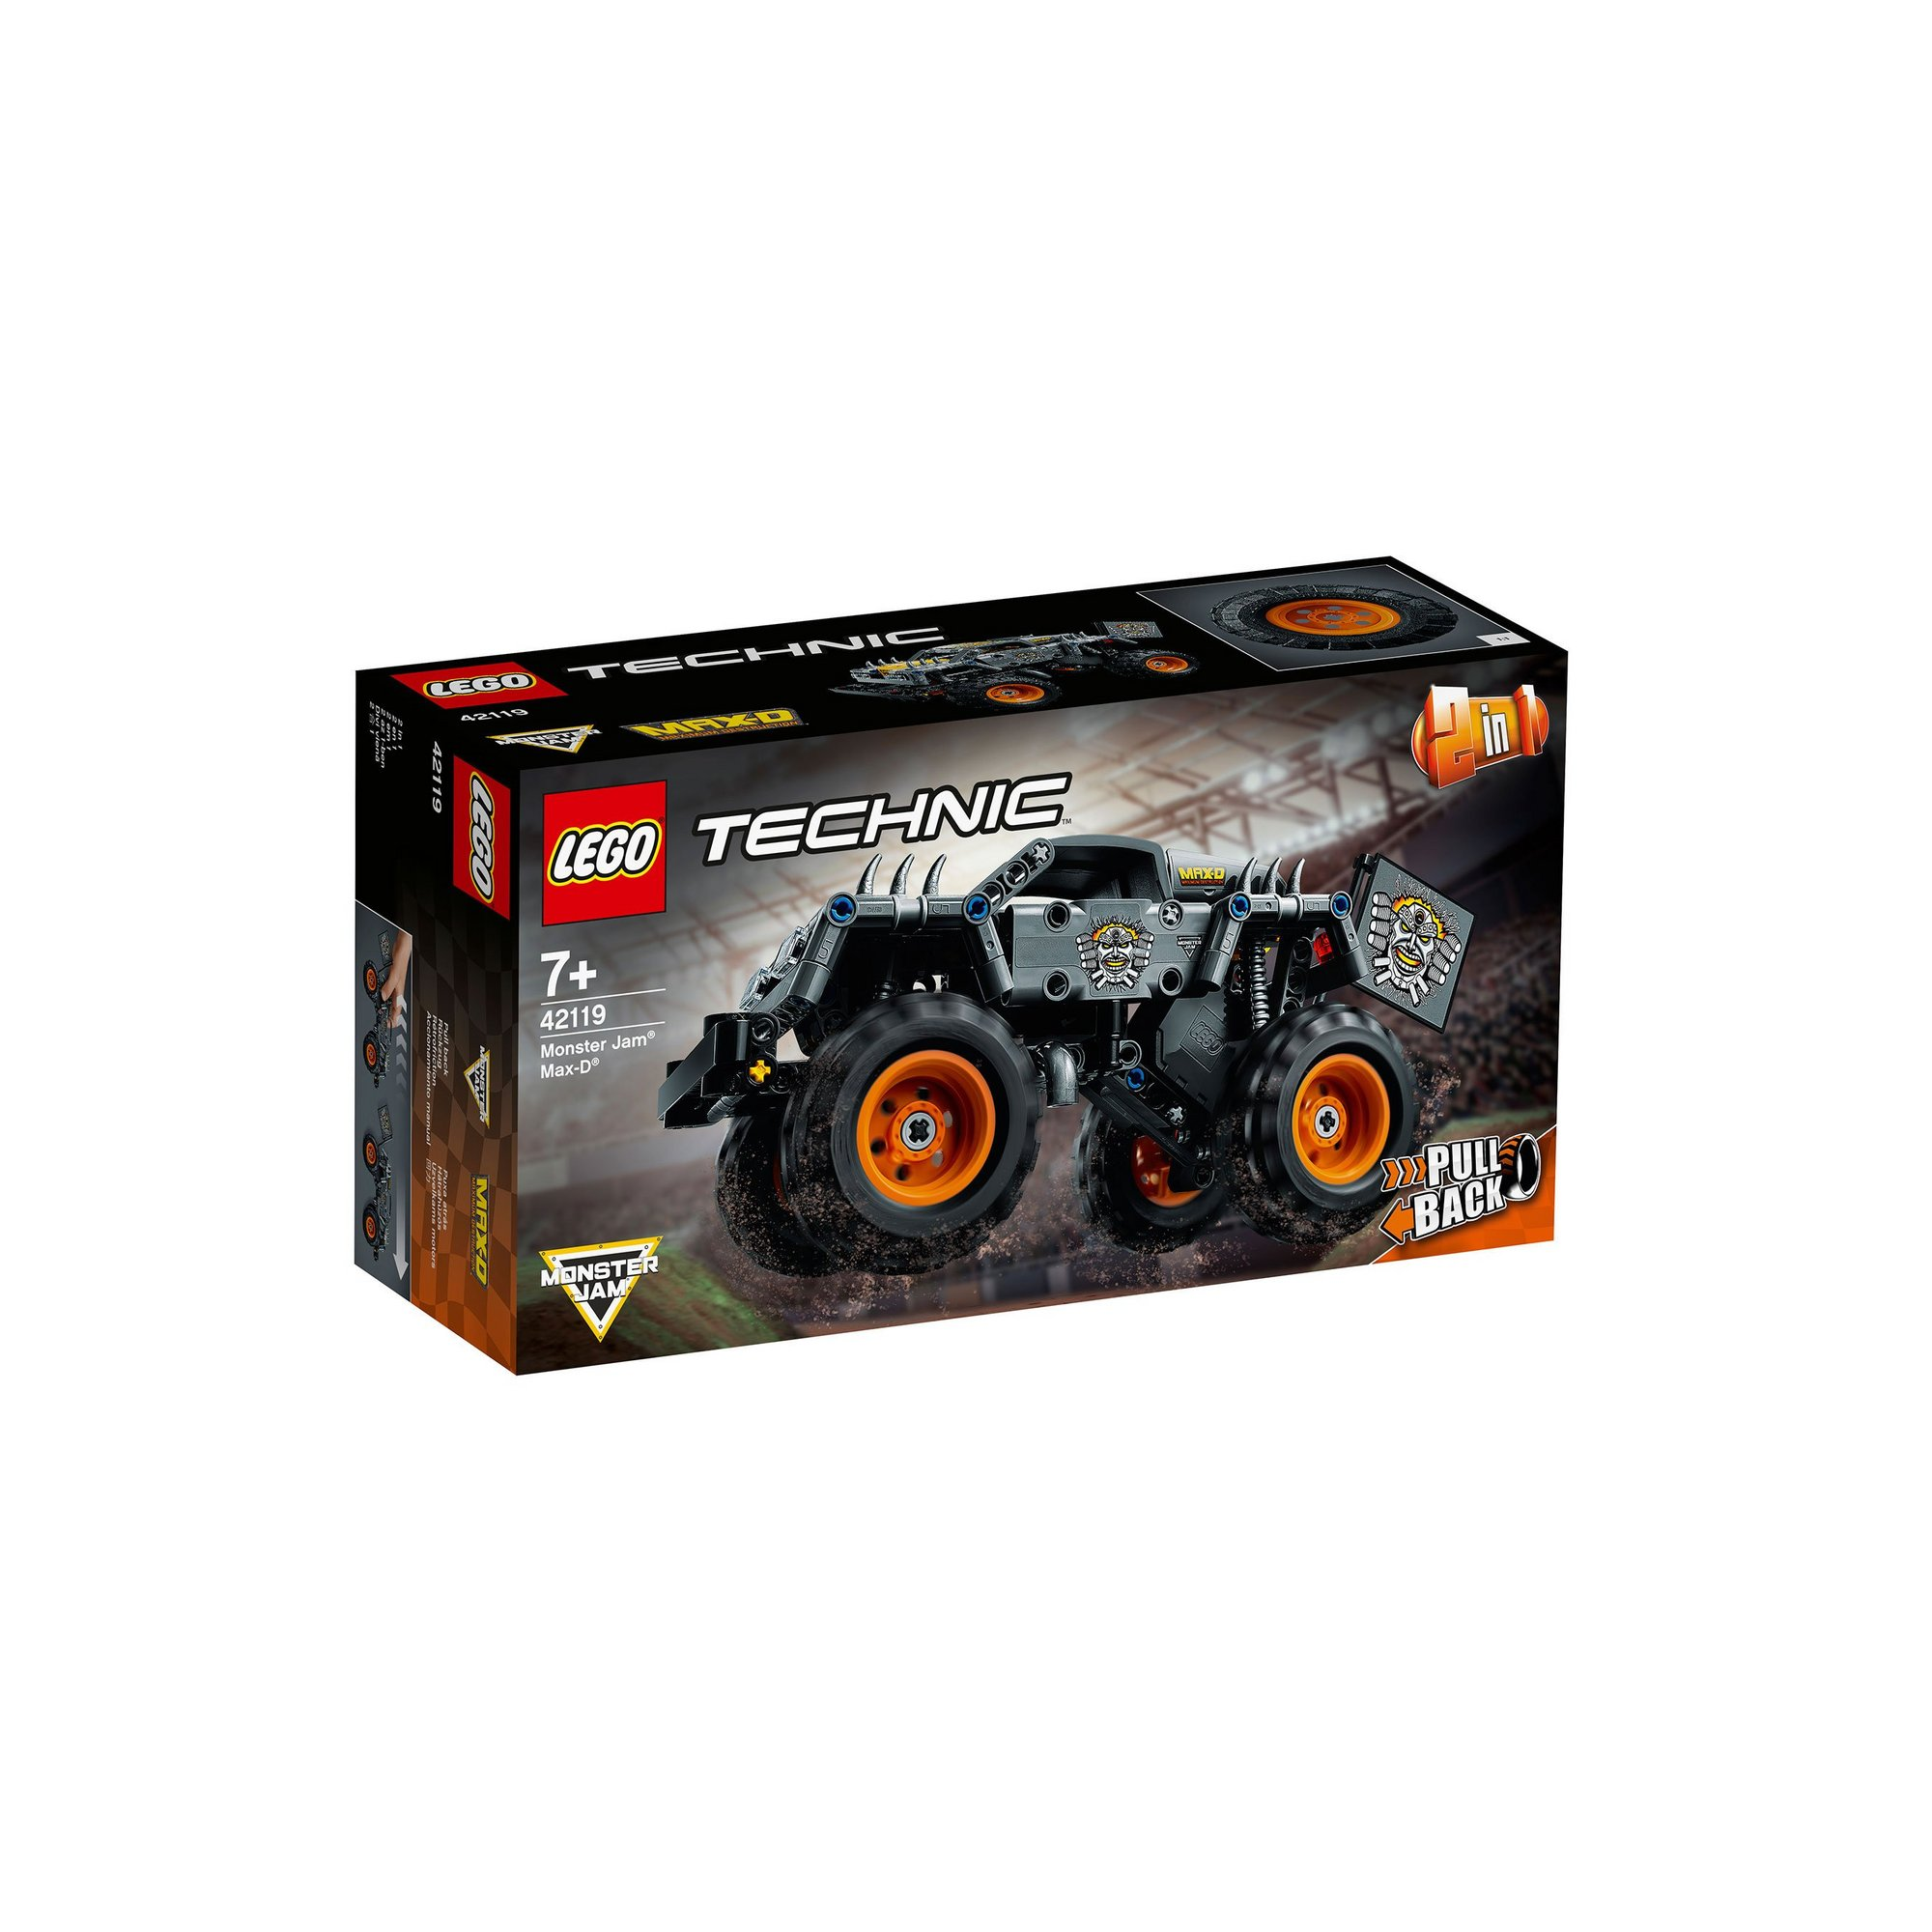 Image of LEGO Technic Monster Jam Max-D